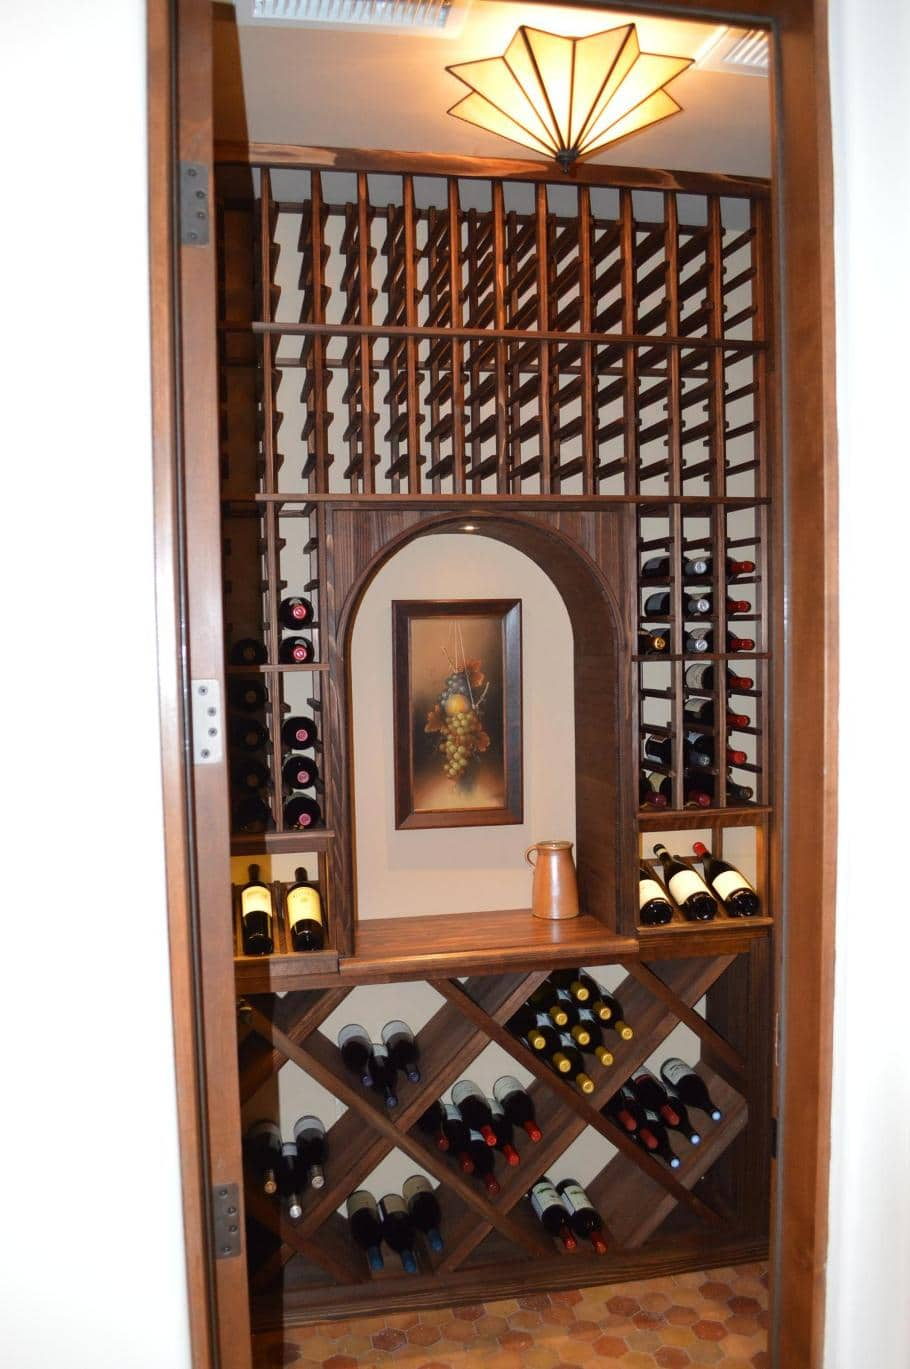 exceptional storage racks for a compact home wine cellar